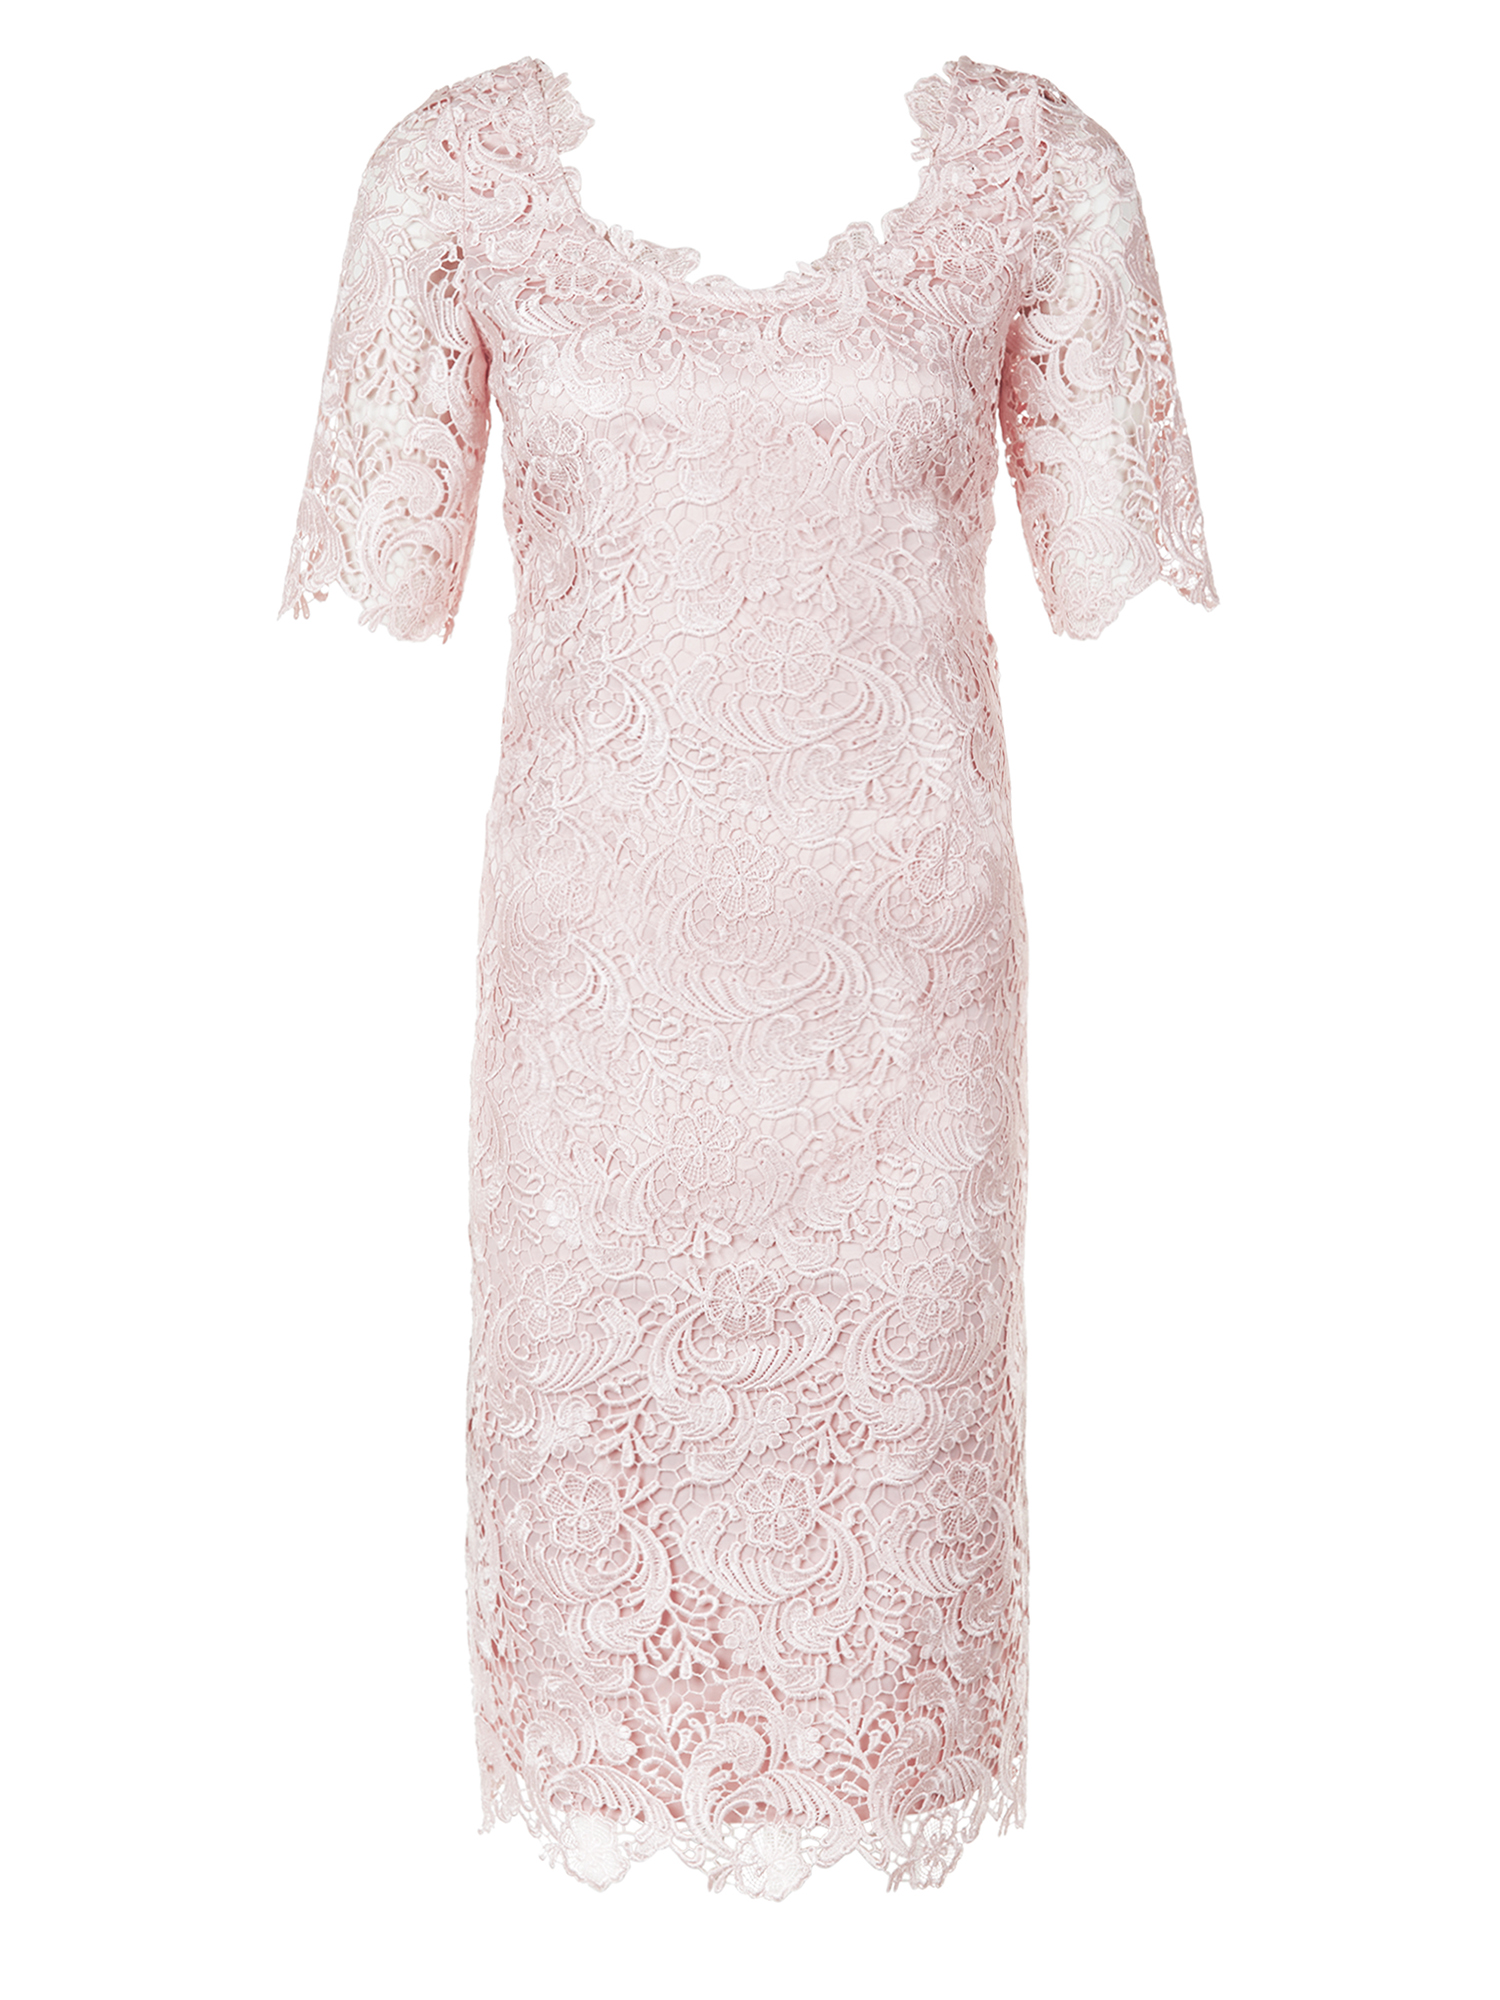 Jacques Vert Dresses For Special Occasions Worth Buying Outfit - Pastel Dresses For Wedding Guests